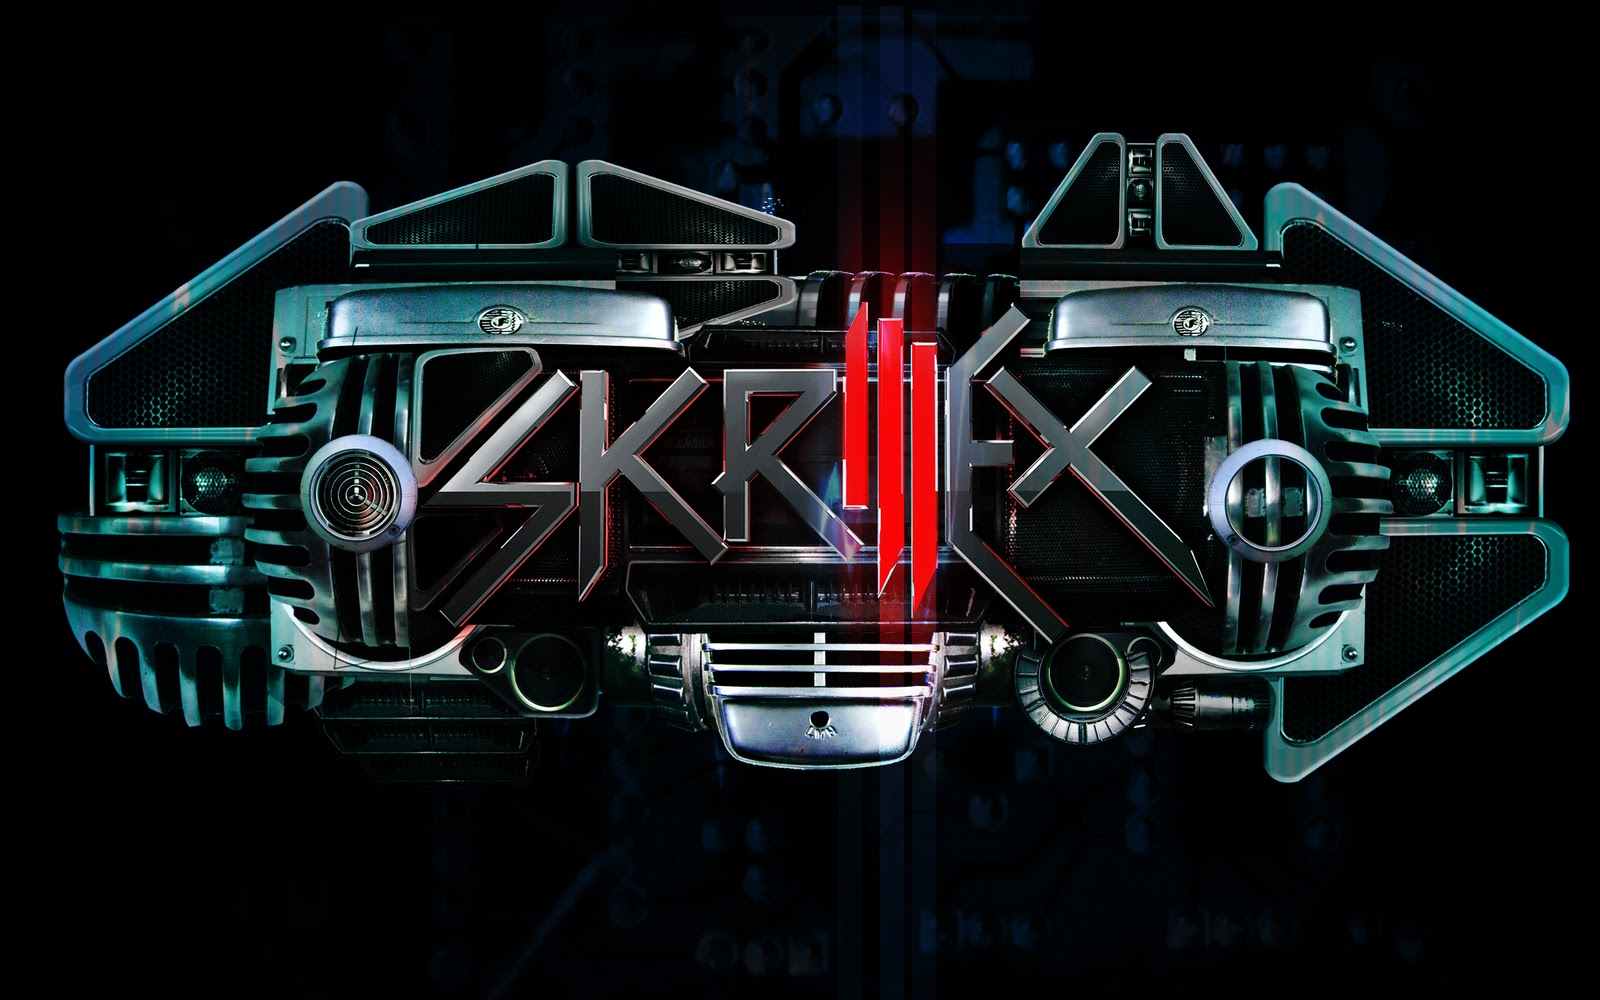 Skrillex Wallpaper and Background 1600x1000 ID224302